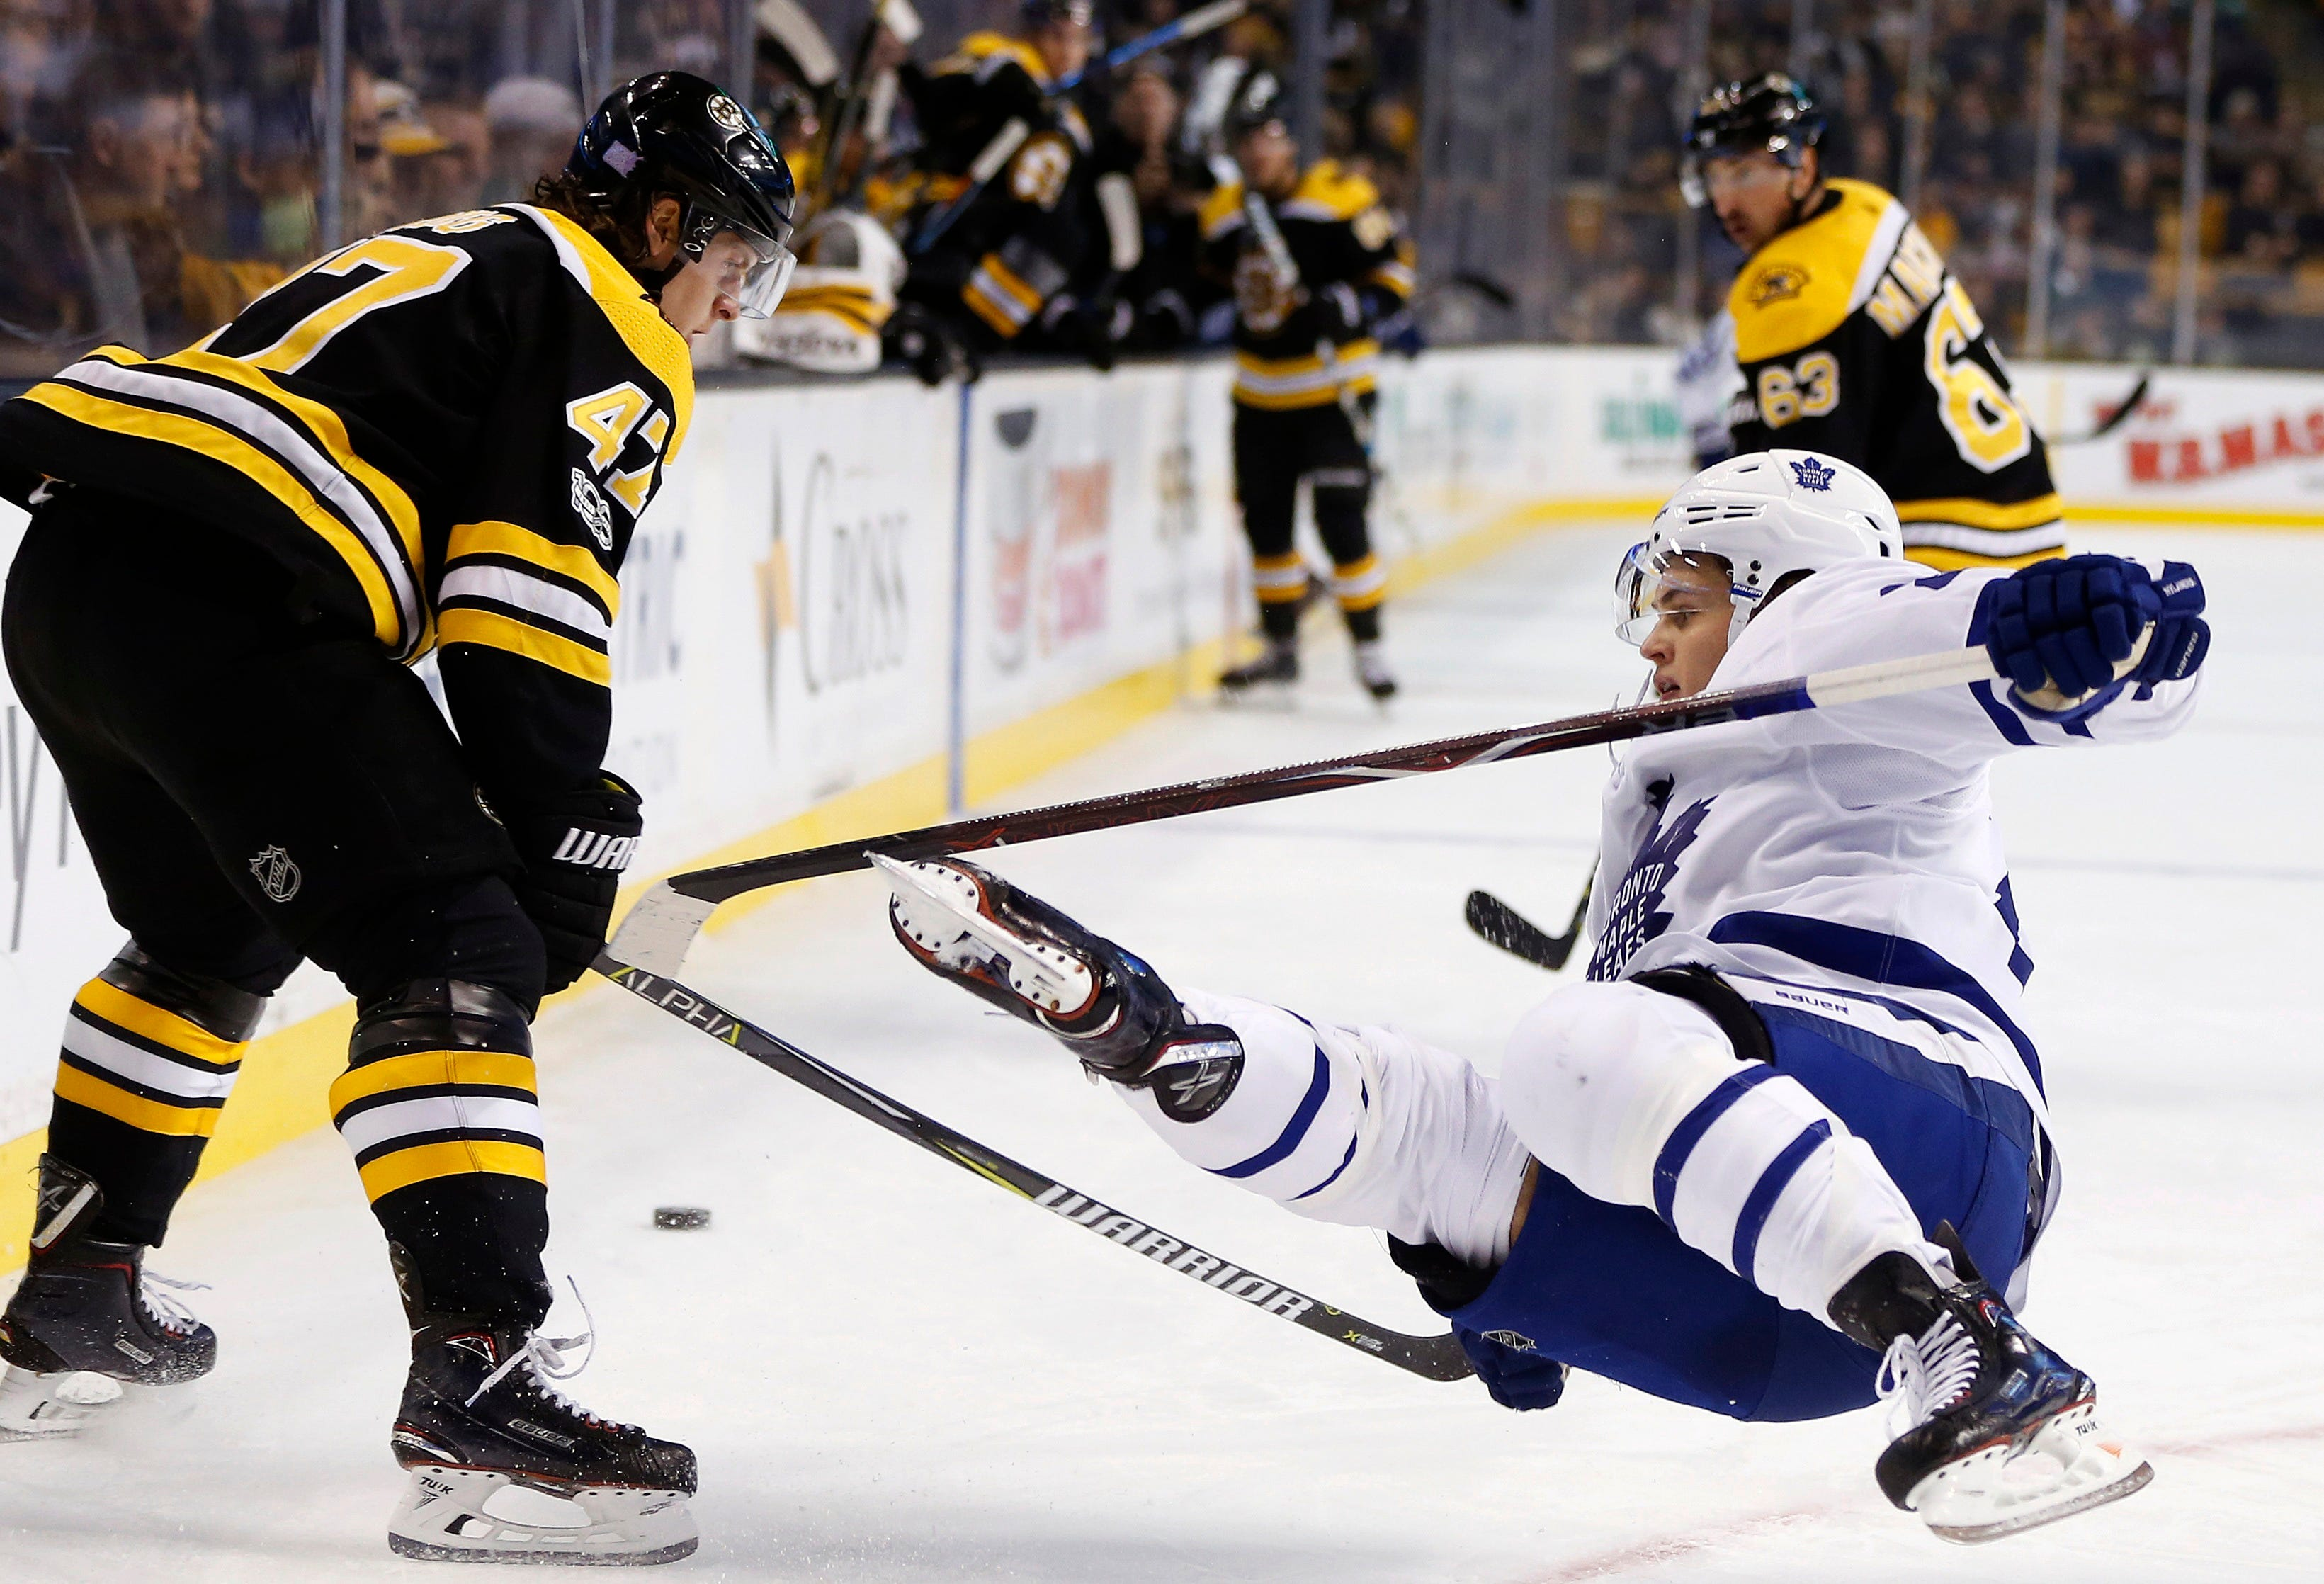 Marner, van Riemsdyk lead Maple Leafs past Bruins, 4-1